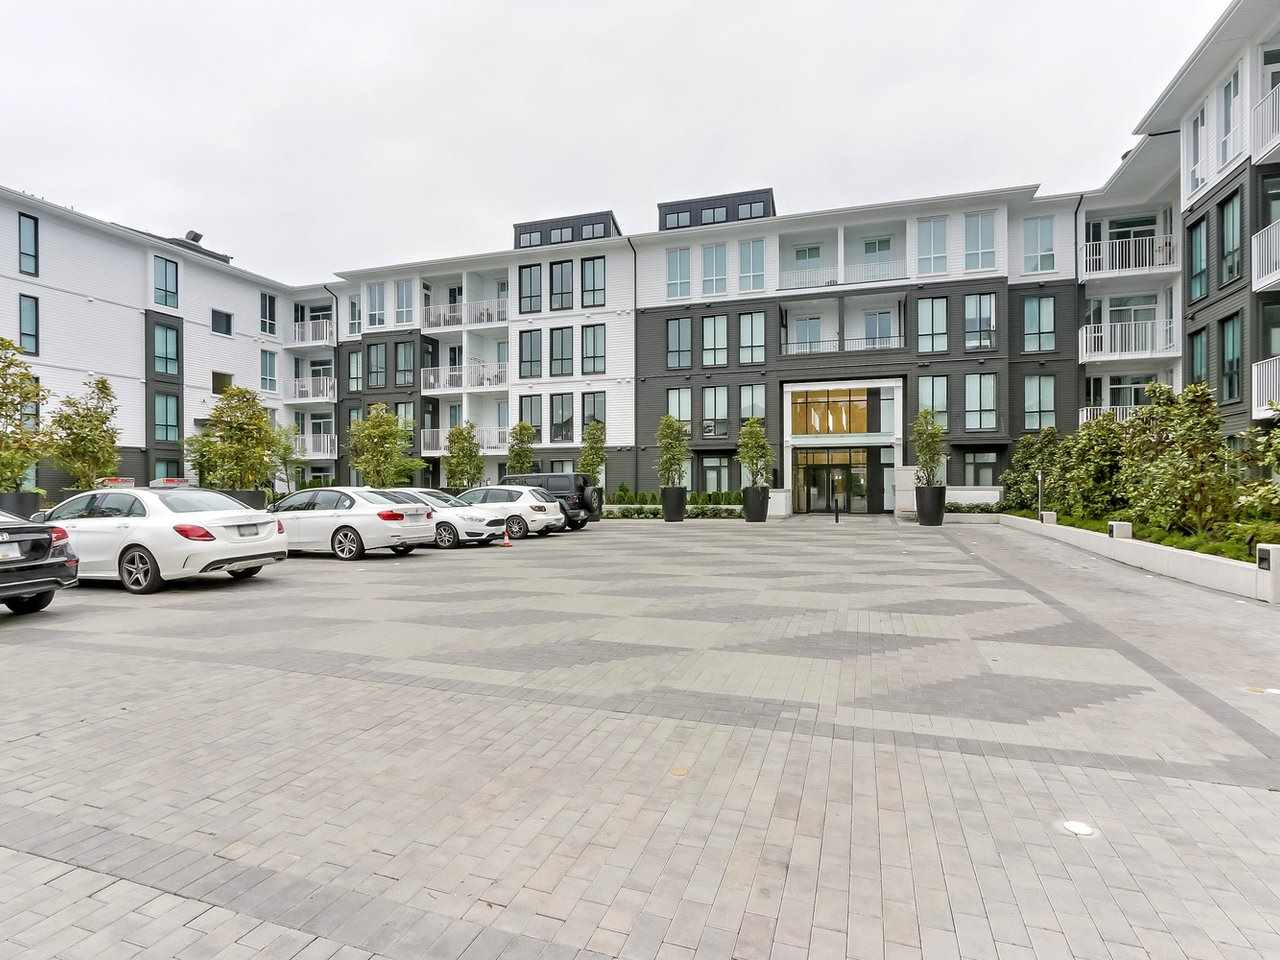 223 14968 101A AVENUE - Guildford Apartment/Condo for sale, 1 Bedroom (R2387225) - #15